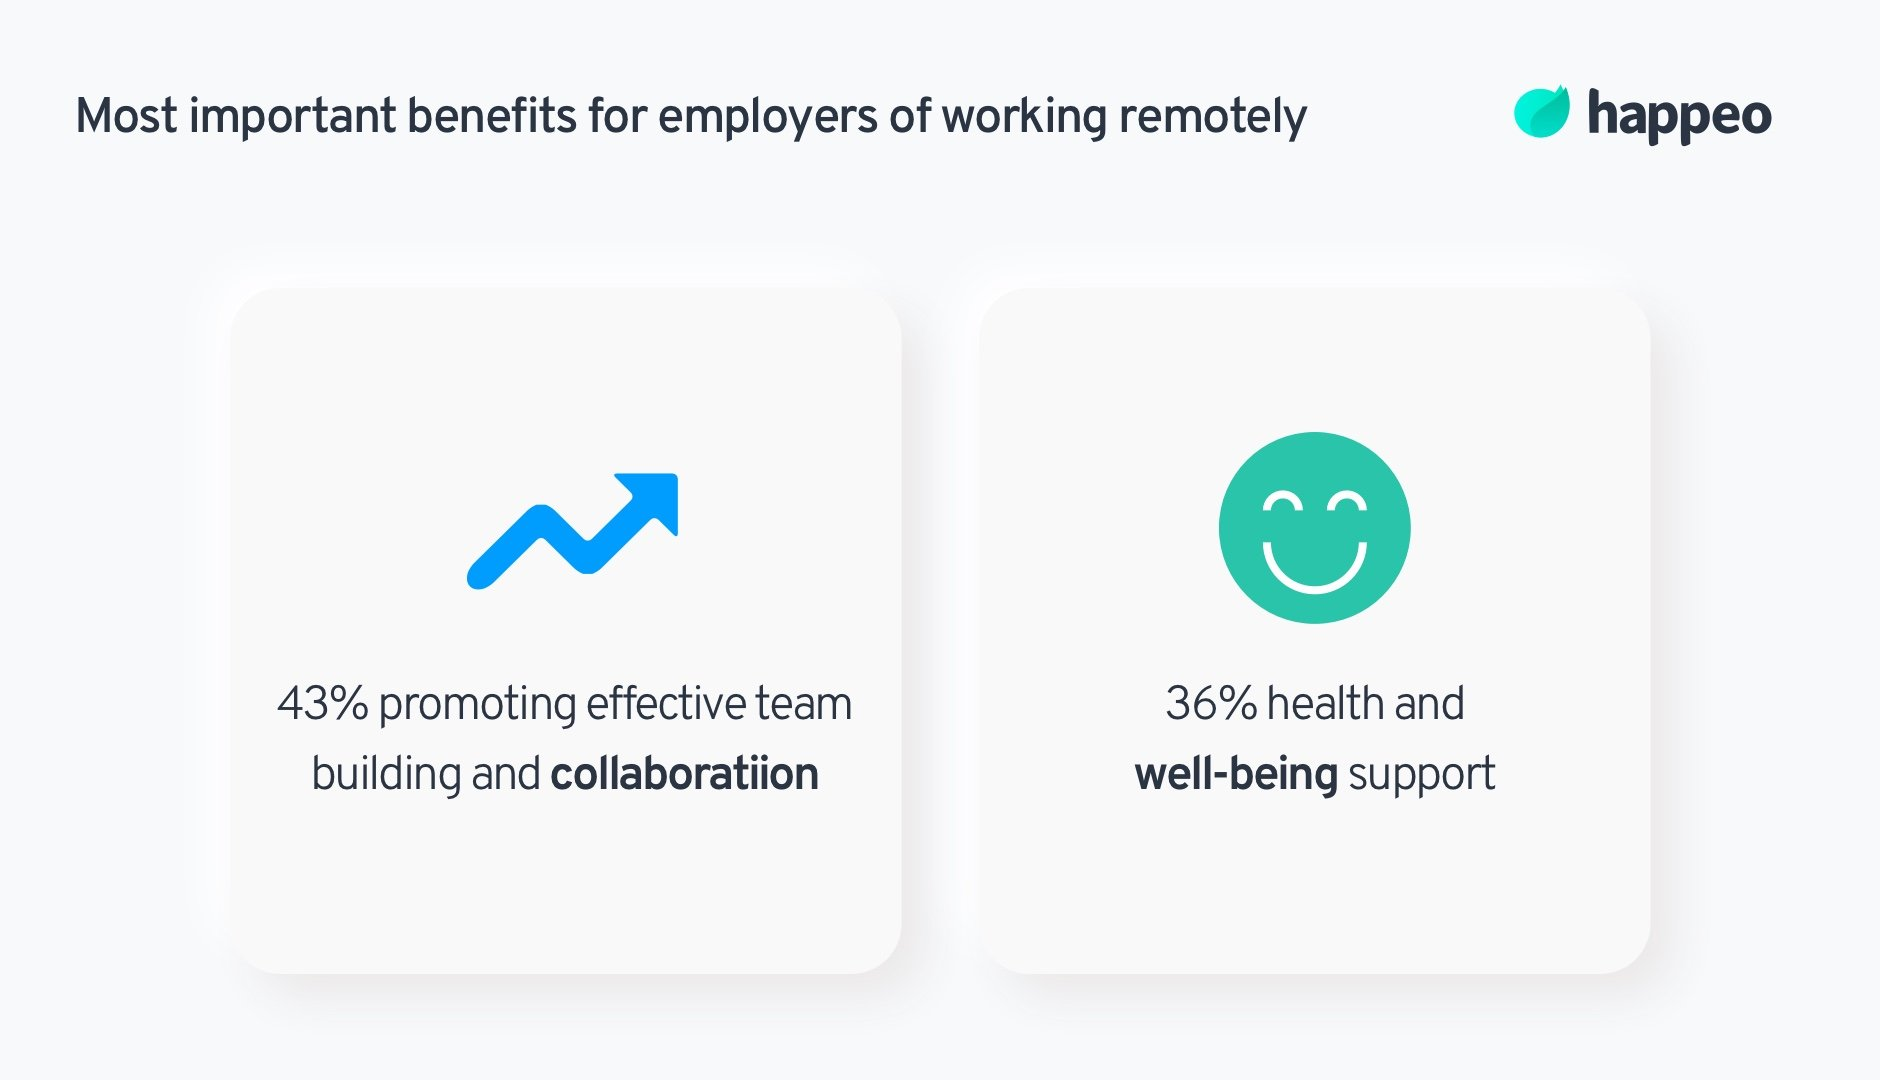 collaboration and remote work benefits